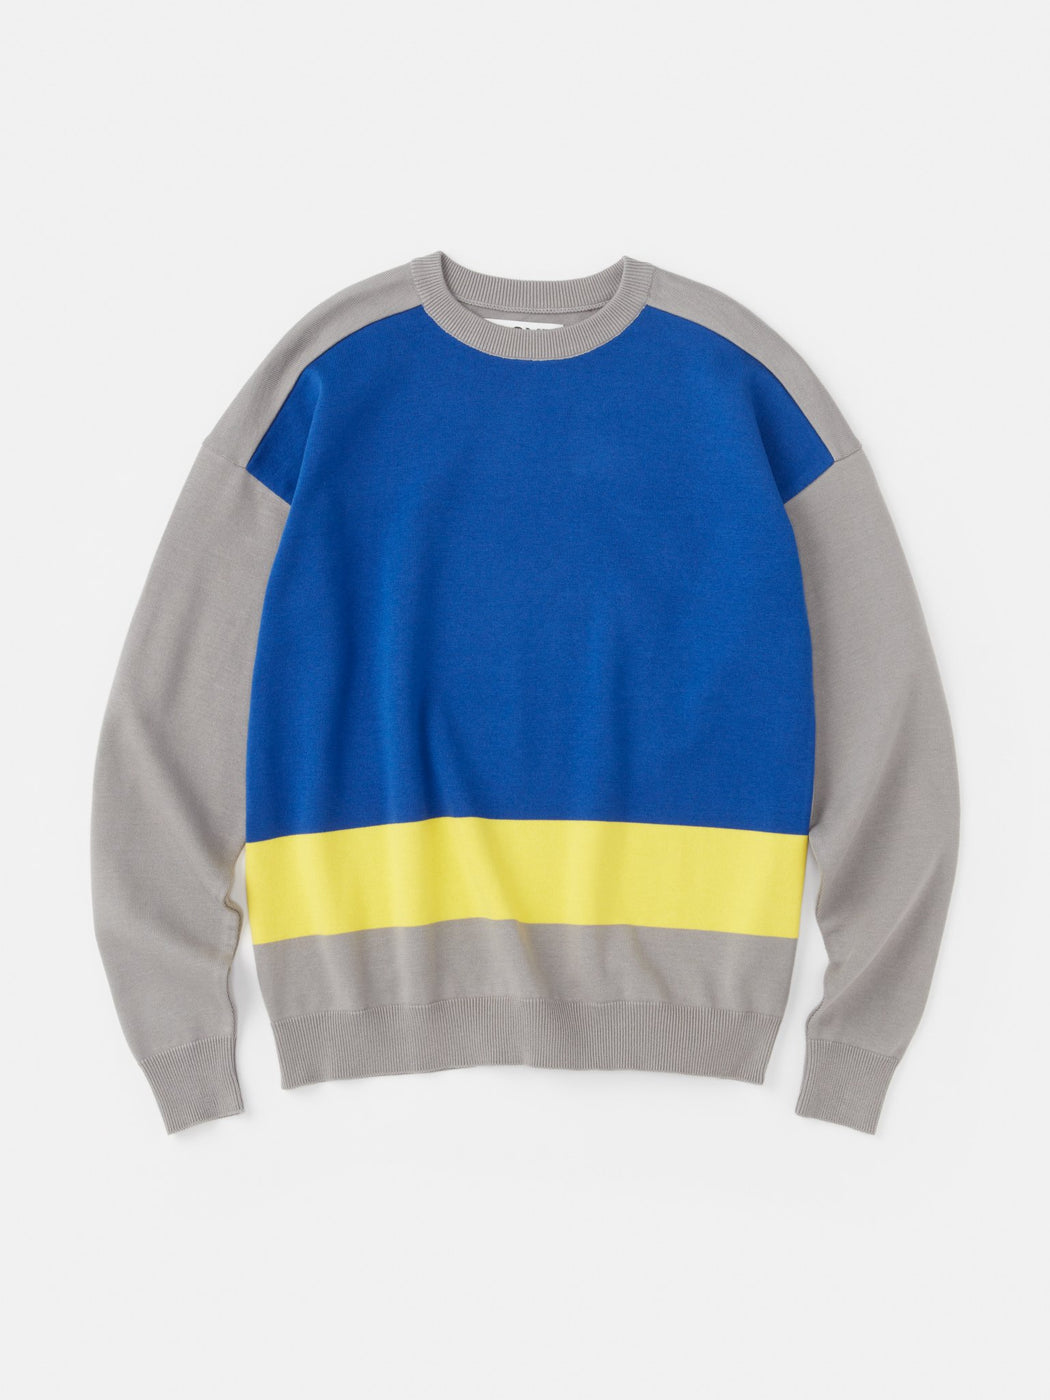 ALOYE G.F.G.S. Cotton Knitted Sweater Gray